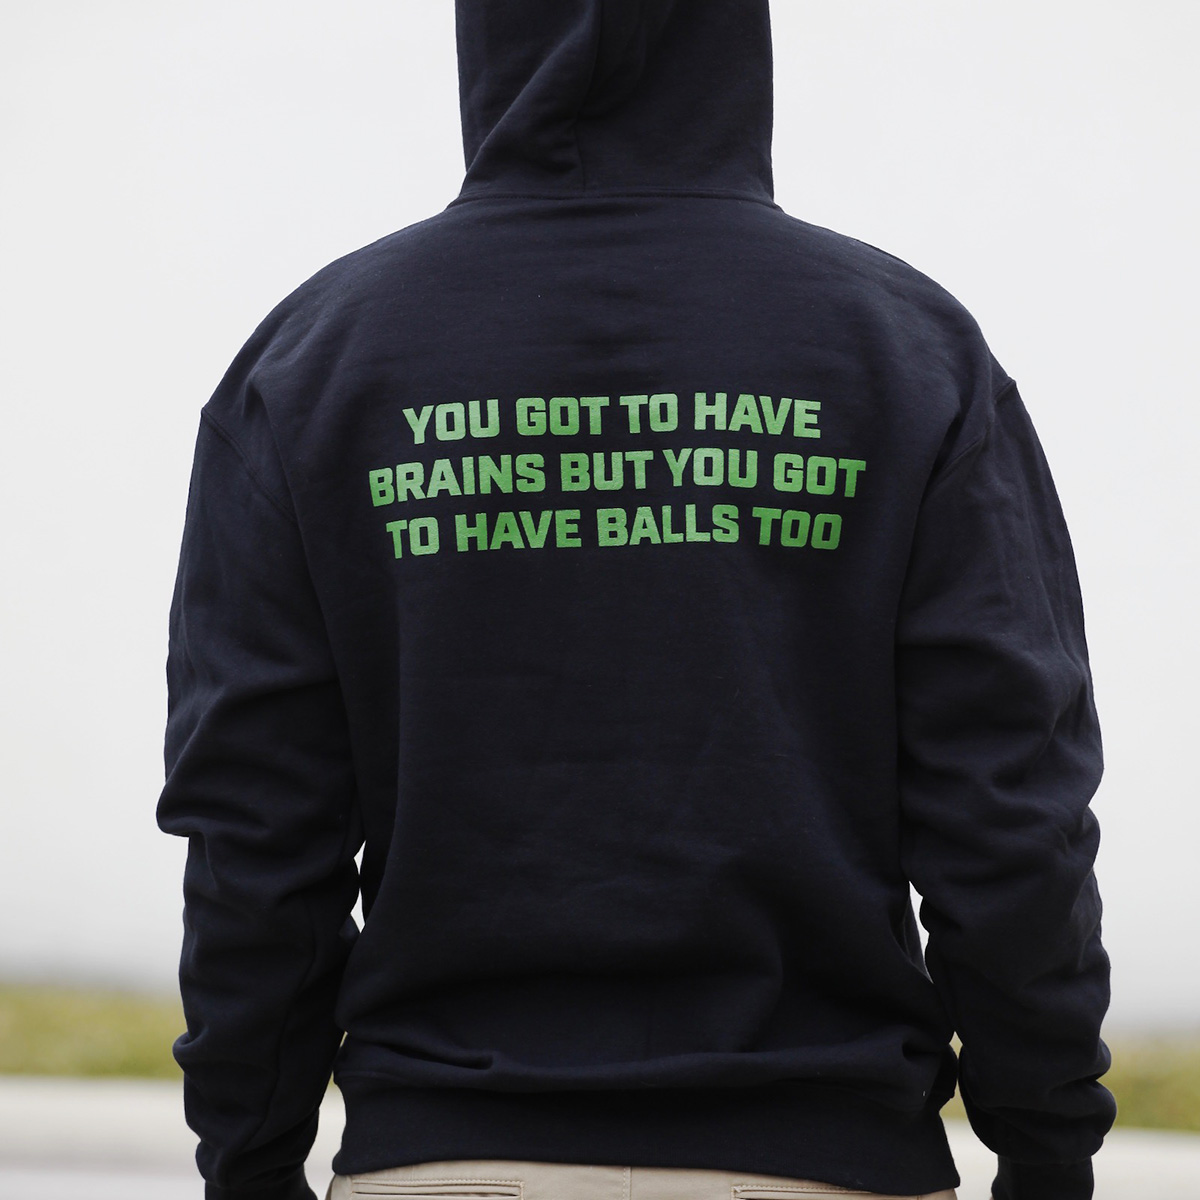 You Got To Have Brains But You Got To Have Balls - Black Hooded Sweatshirt - Back